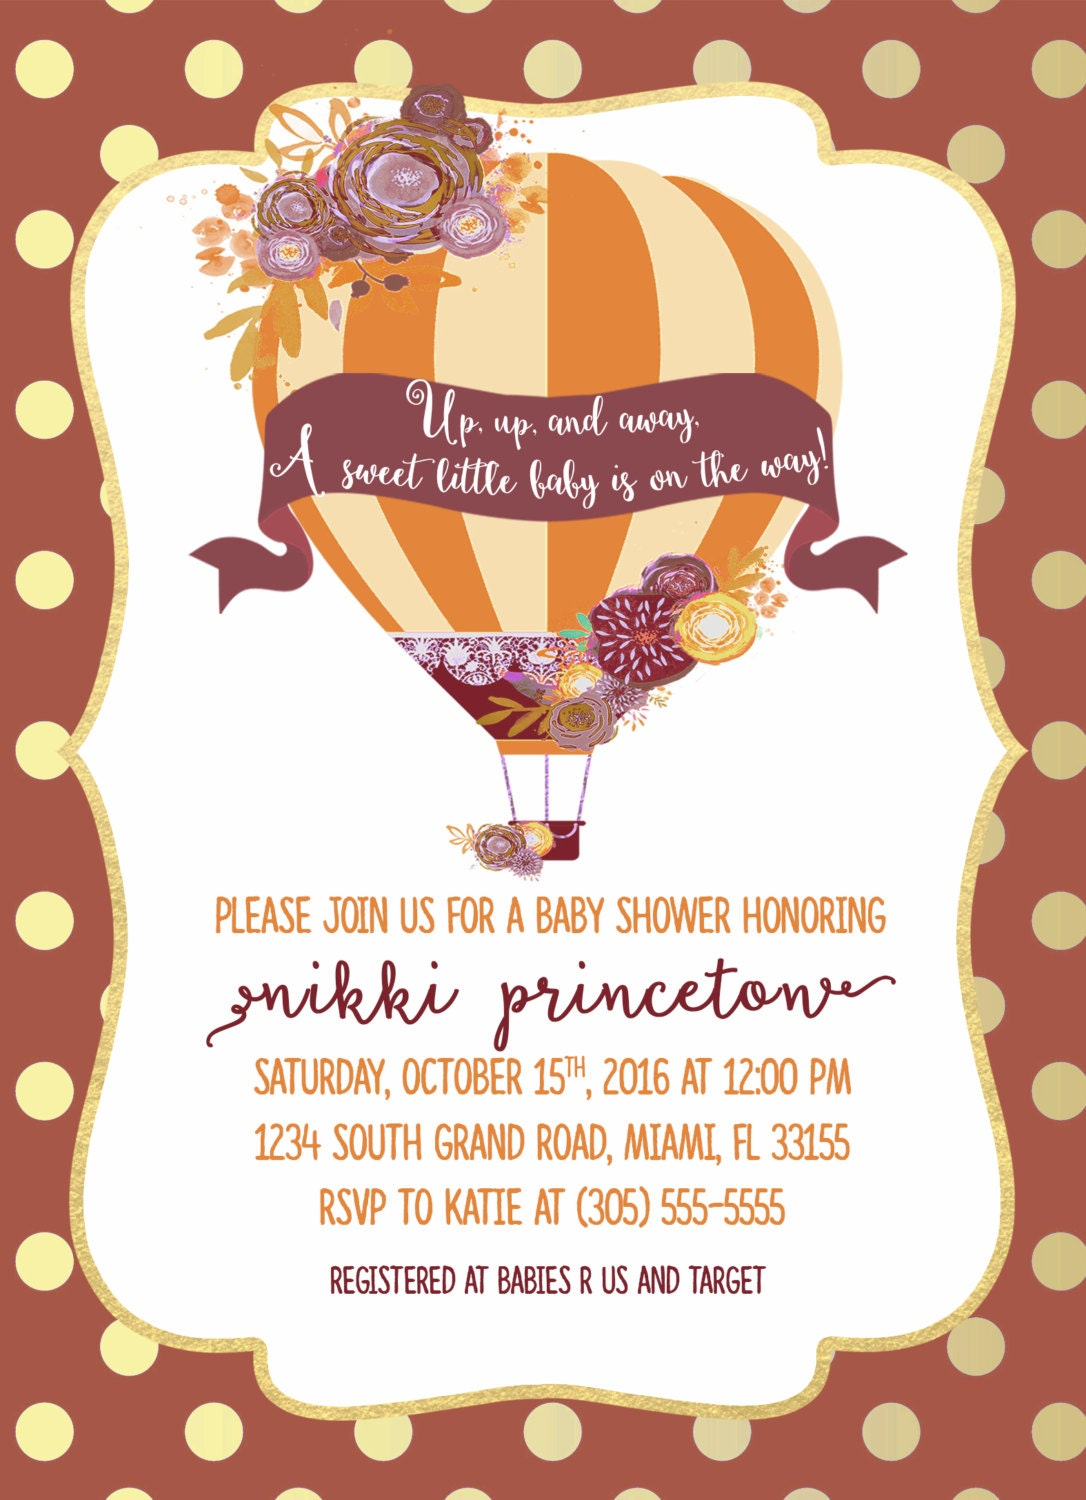 Fall Hot Air Balloon Baby Shower Invitation, Burgundy Baby Shower ...